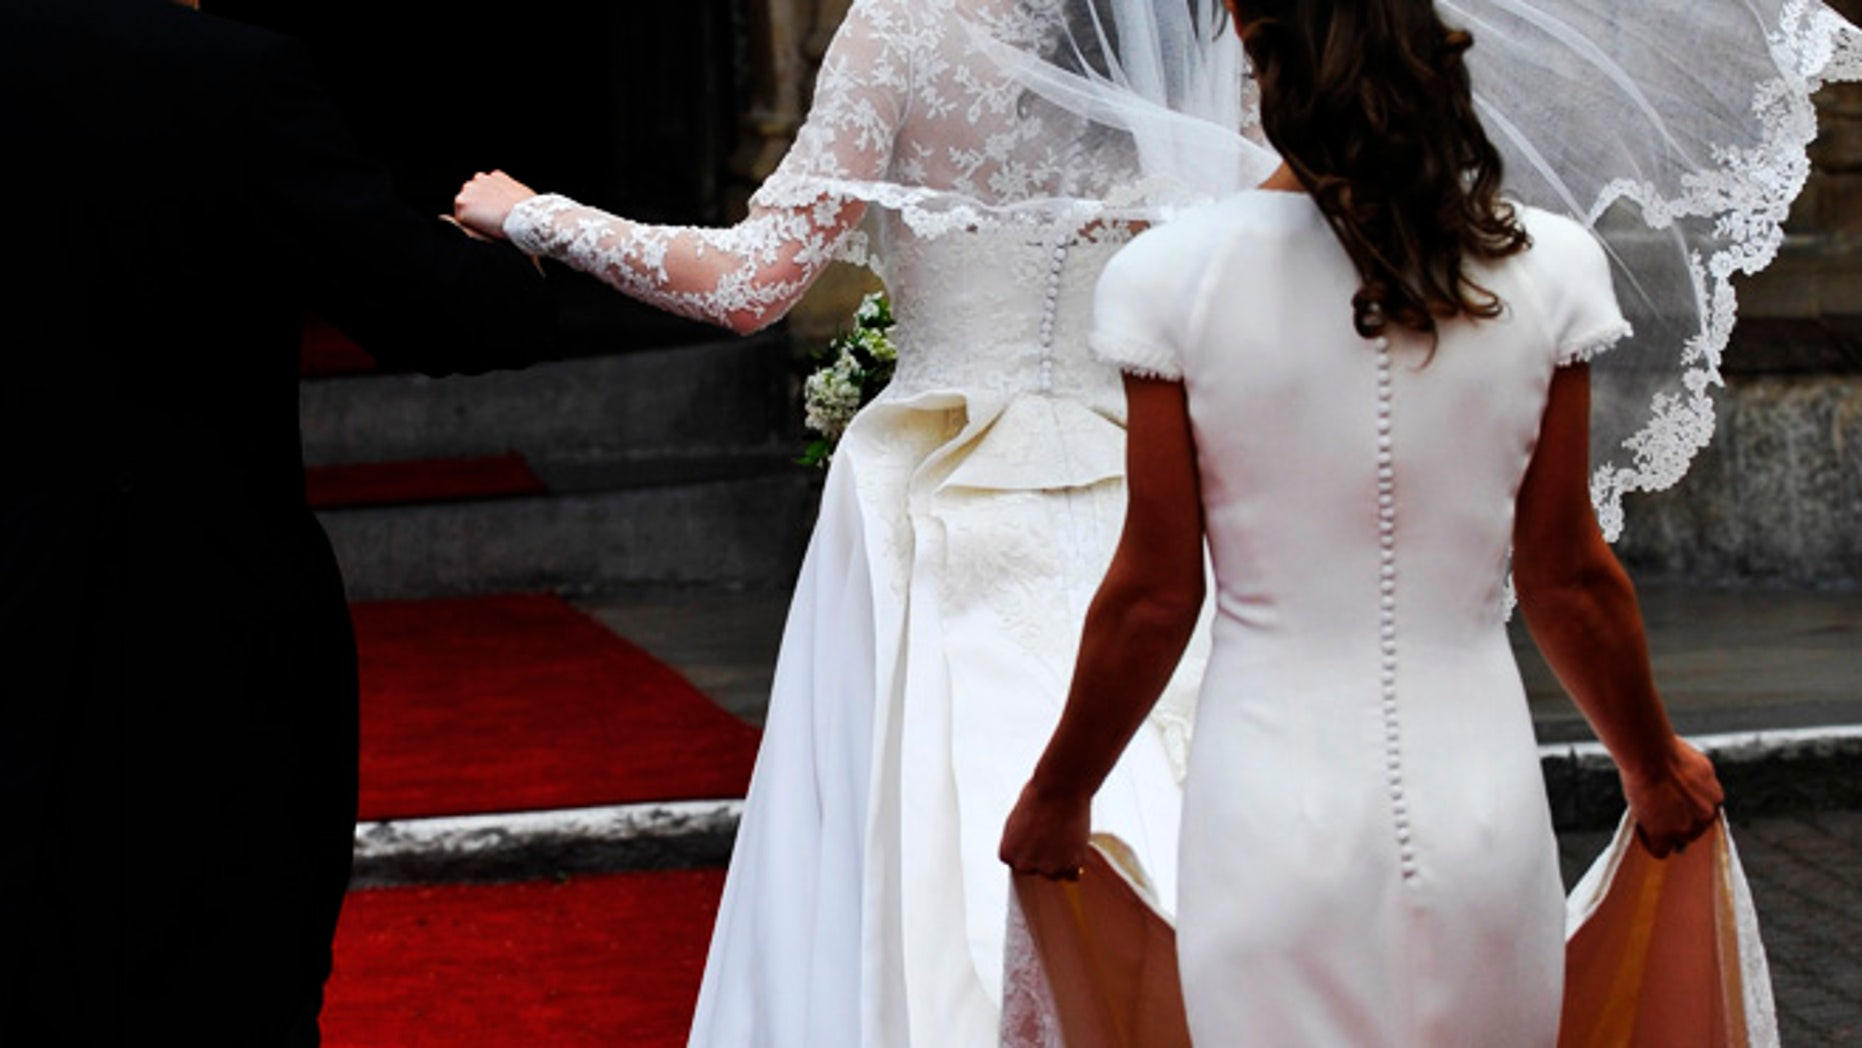 Kate Middleton arrives with her father Michael and sister Pippa at Westminster Abbey before Kate's marriage to Britain's Prince William in central London April 29, 2011. (ROYAL WEDDING/VIP)          REUTERS/Toby Melville (BRITAIN  - Tags: ROYALS SOCIETY ENTERTAINMENT)   - RTR2LR29